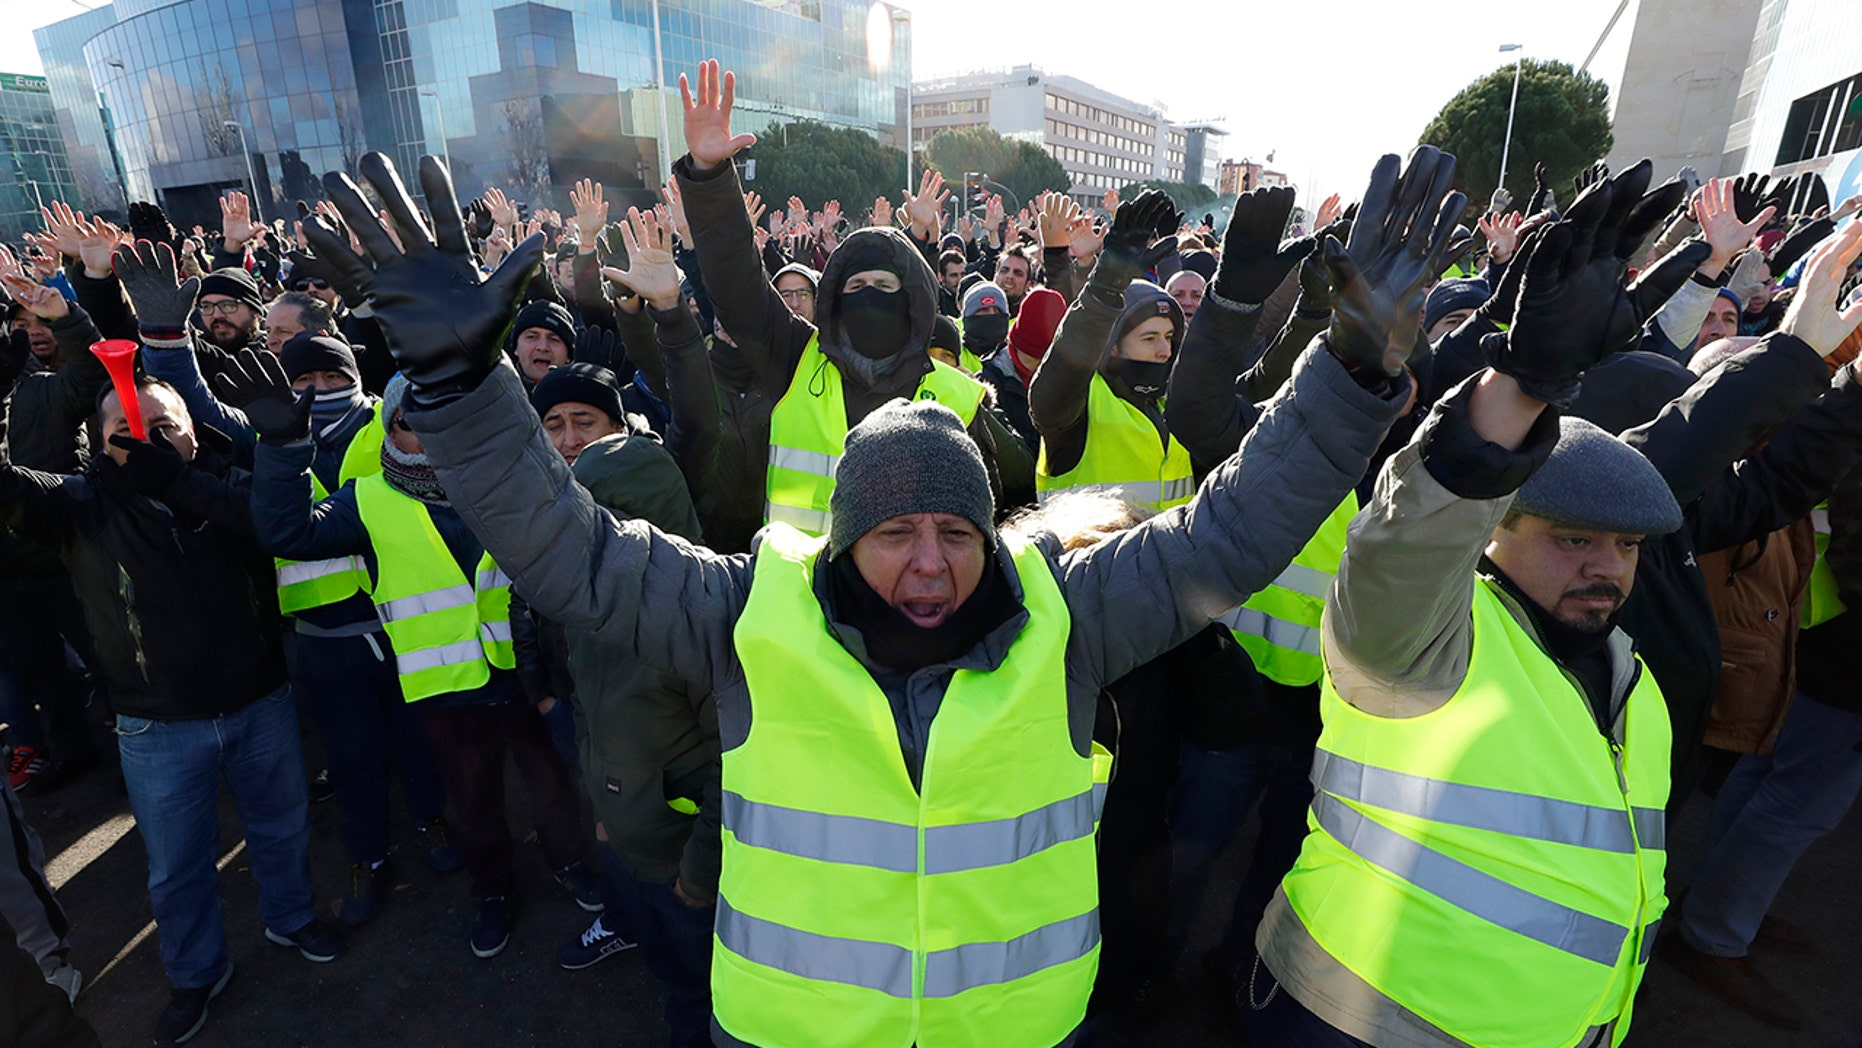 Striking Spanish taxi drivers demand more regulations for app-based ride-hailing services and are blocking access to a trade exhibition center in Madrid where a major tourism fair begins Wednesday.